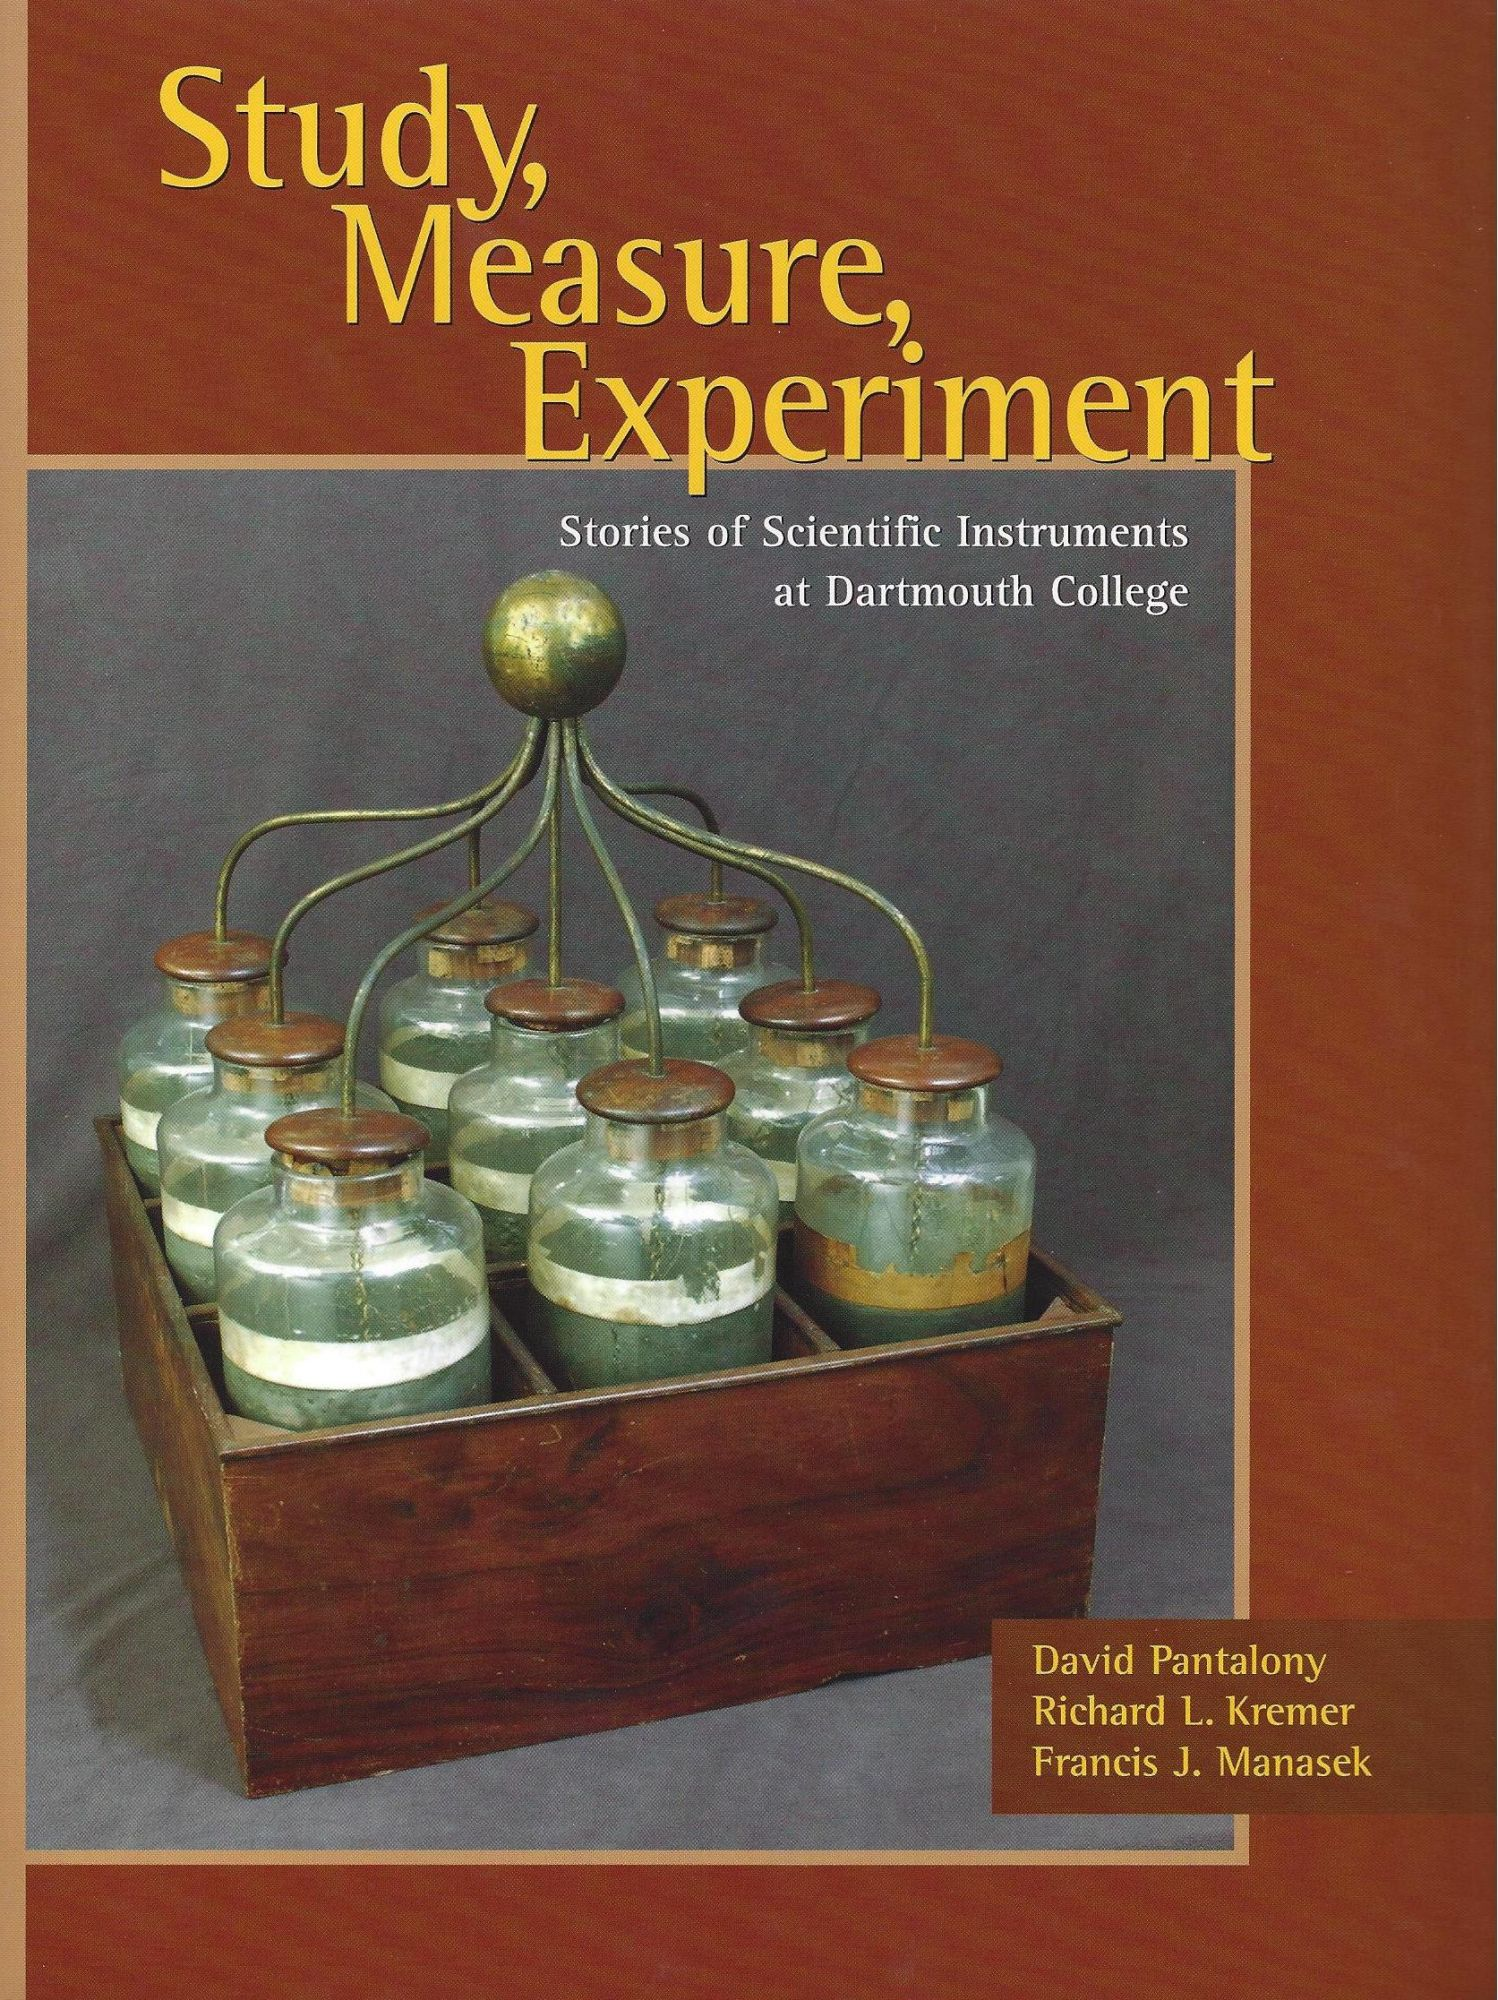 Study, Measure, Experiment: Stories of Scientific Instruments at Dartmouth College. David Pantalony, Francis J. Manasek, Richard L. Kremer.